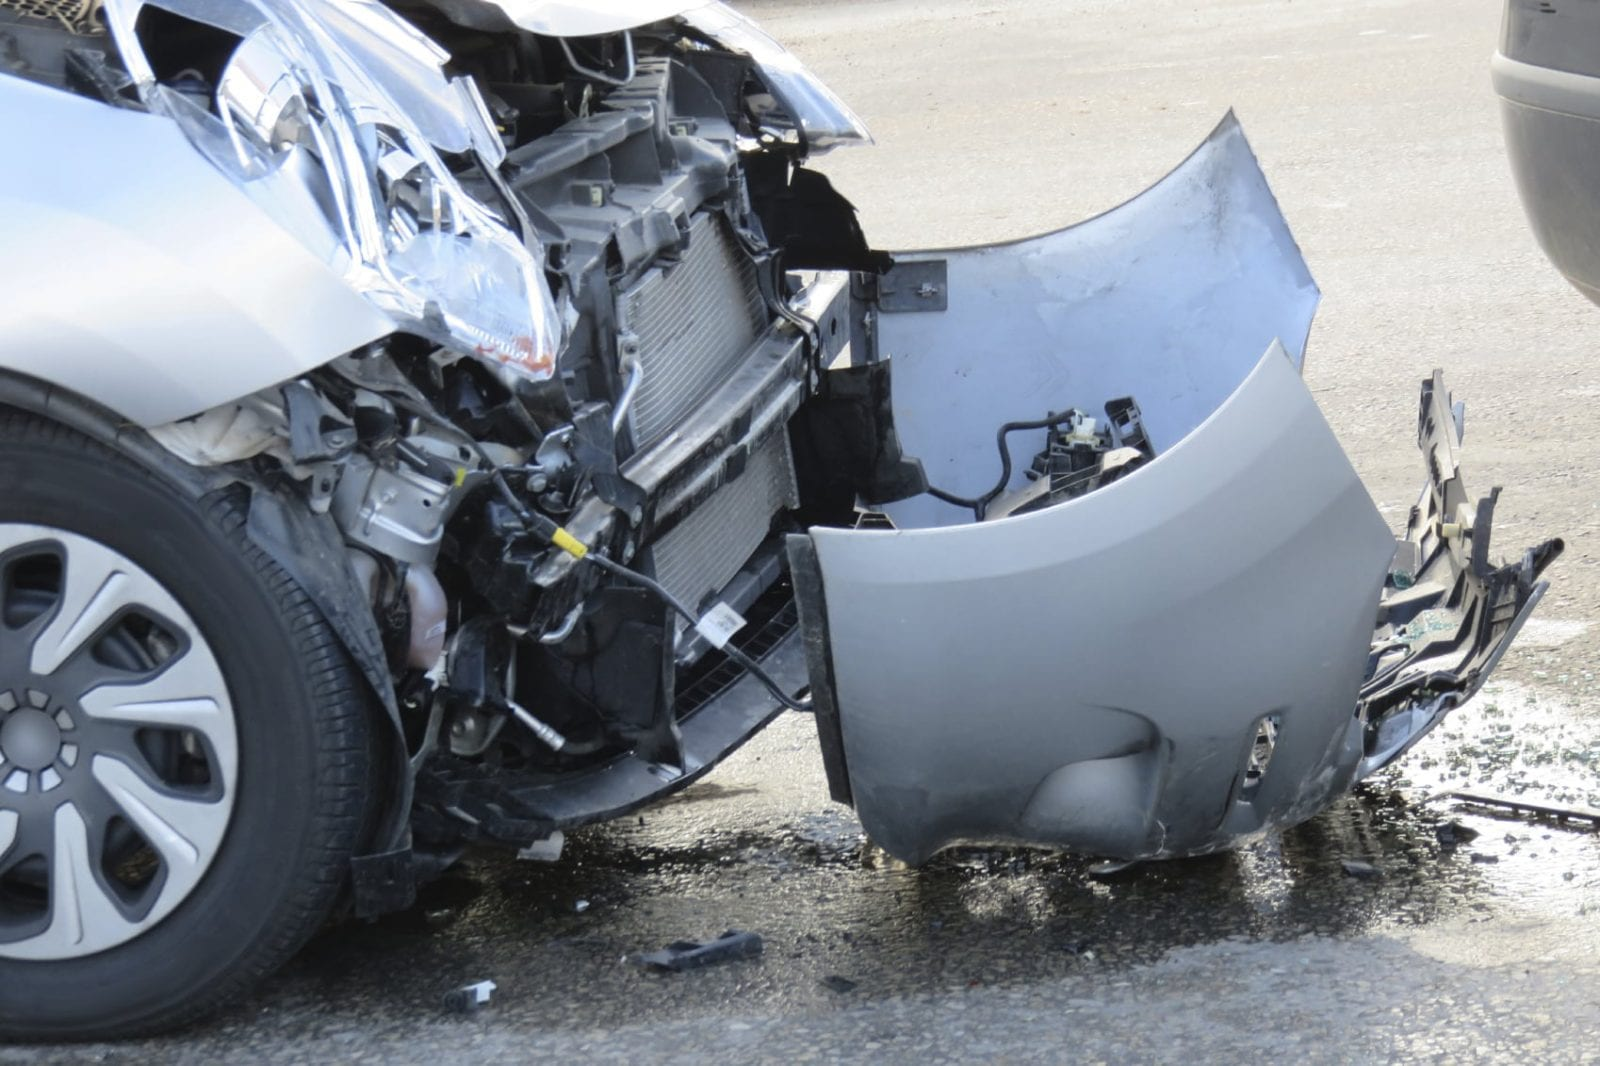 Car Accident - Front End Damage Stock Photo. Odessa Personal Injury Lawyer Discusses Crash At Midland Area Intersection